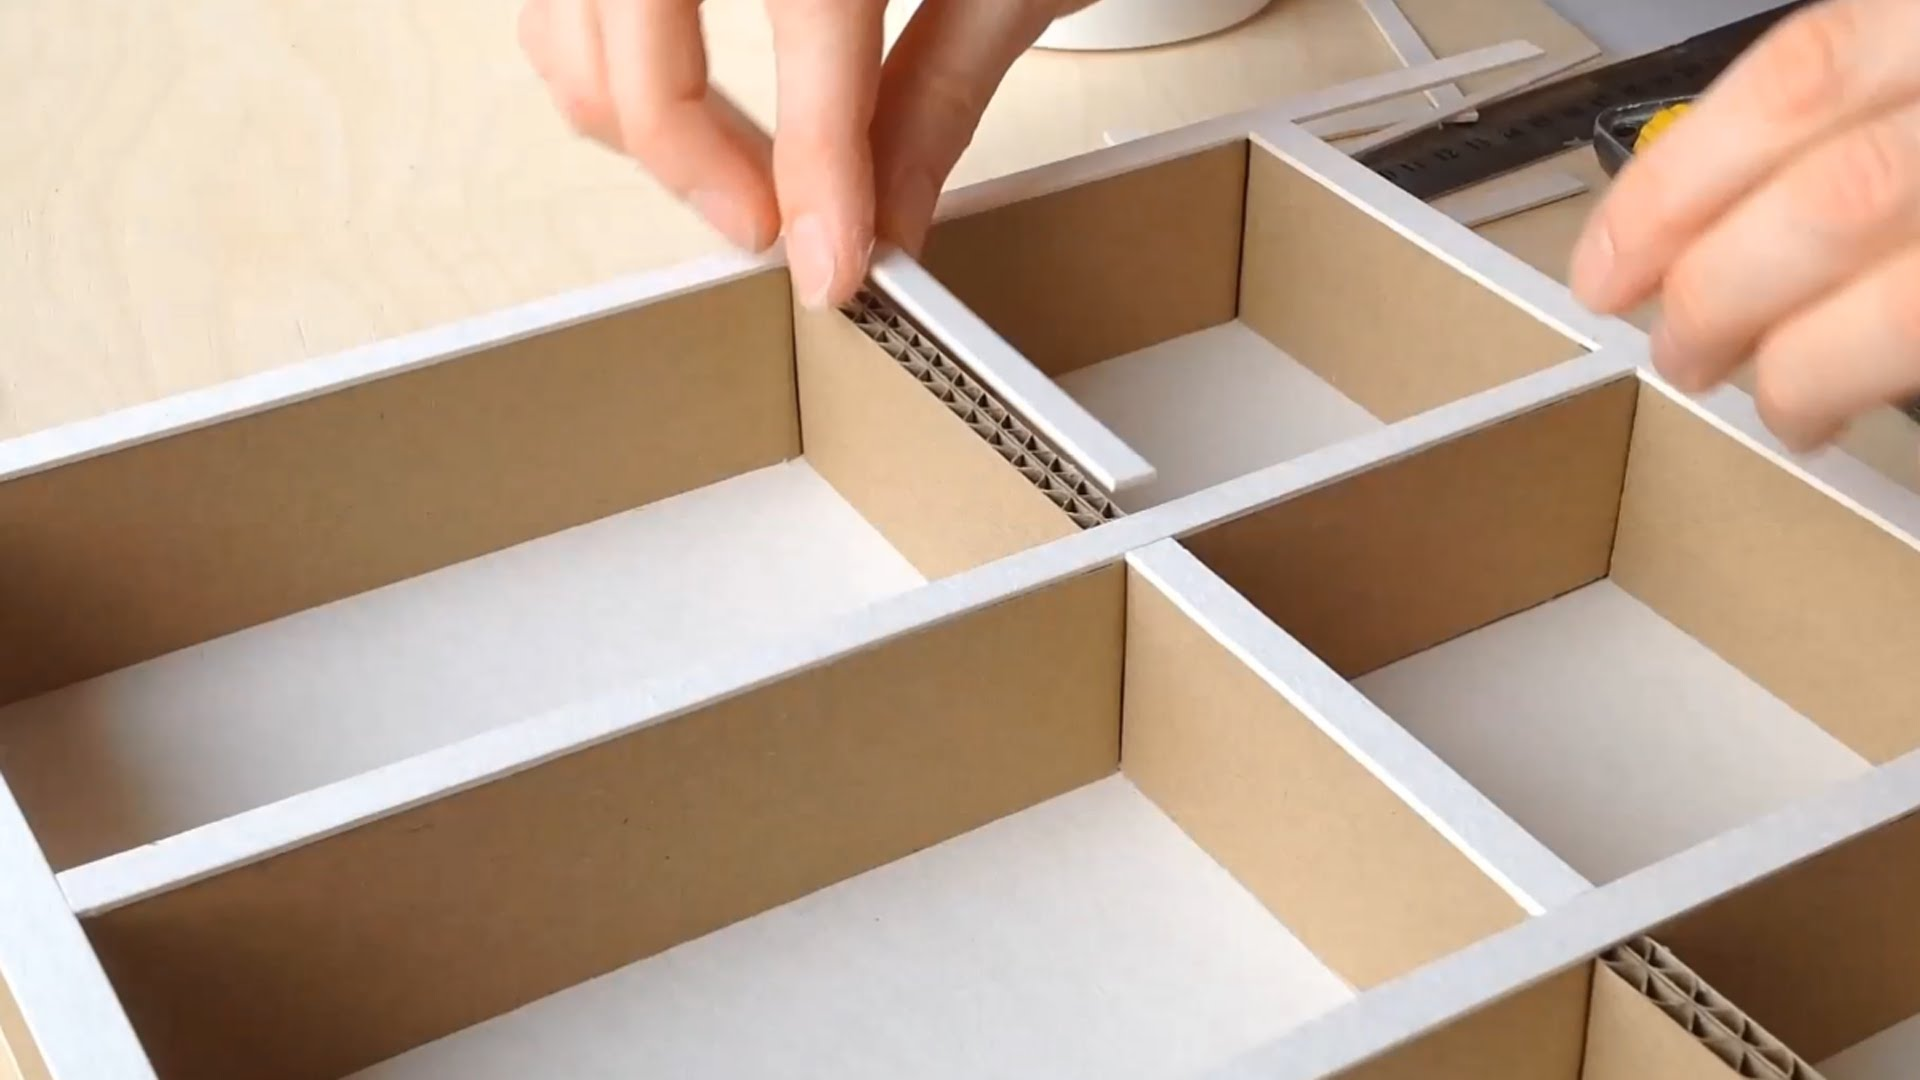 Learn how to make a DIY cardboard desktop organizer